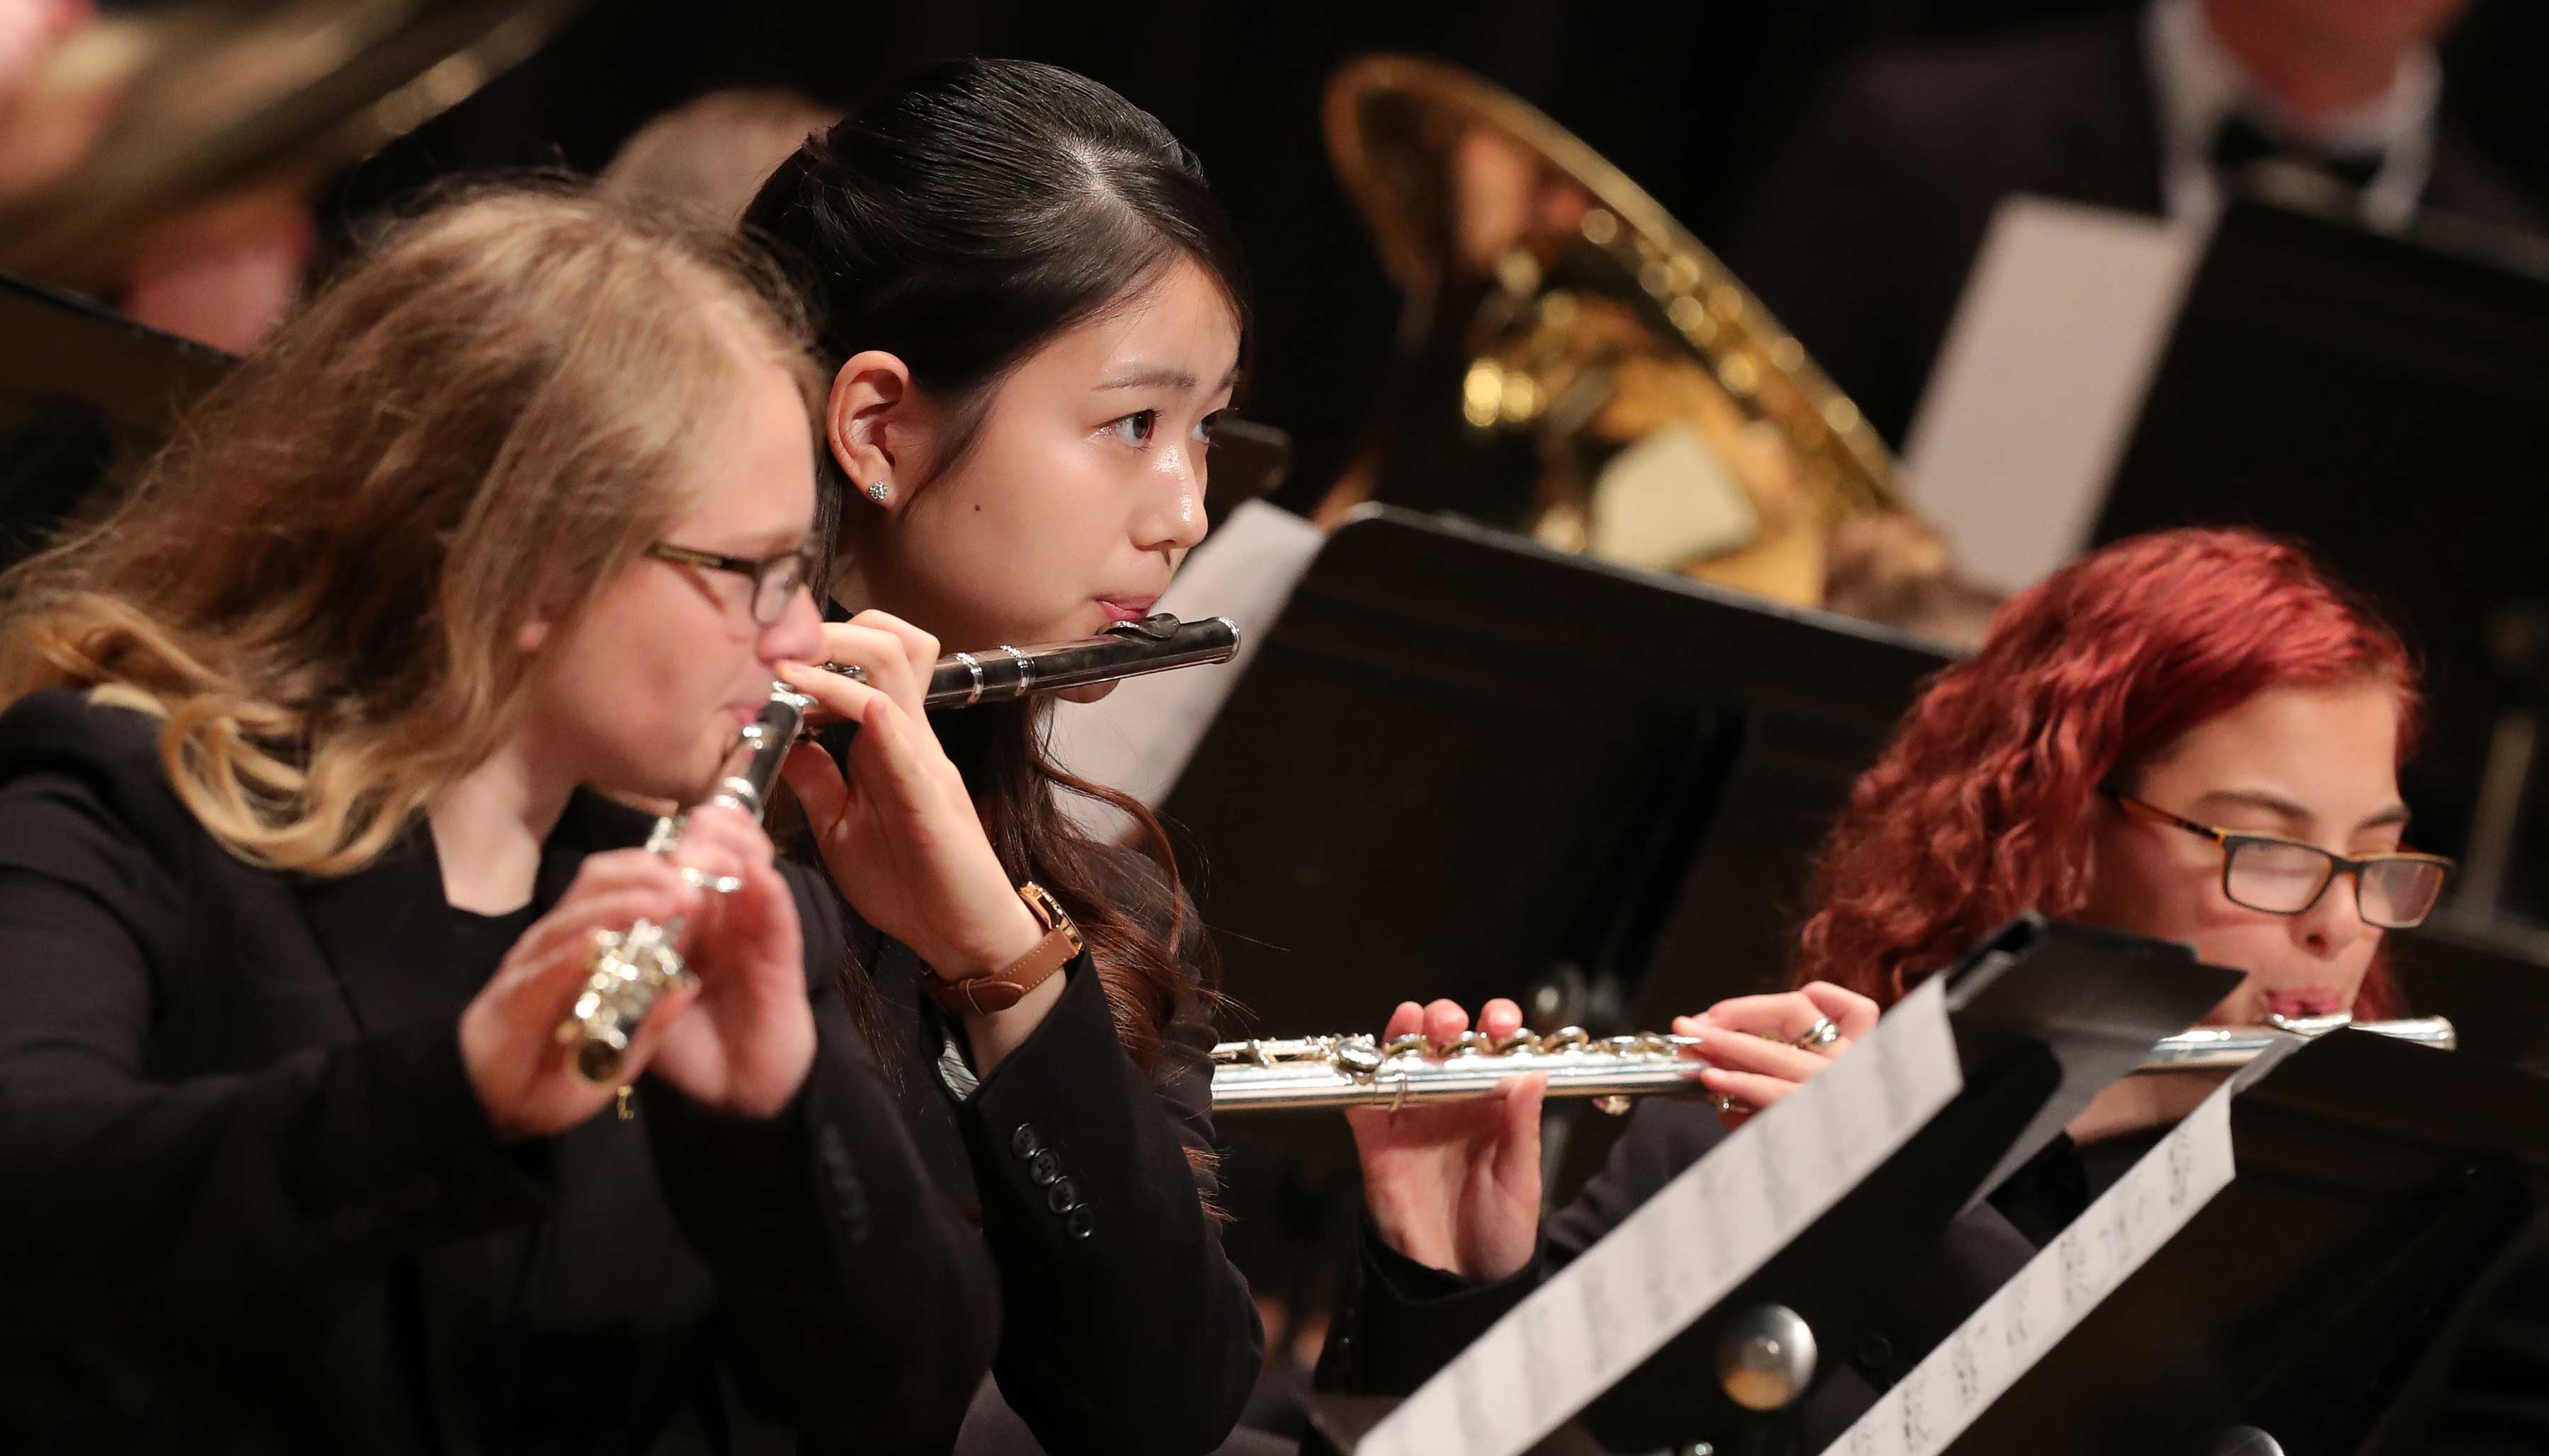 The UNK Wind Ensemble will perform 8 p.m. Friday in Kimball Recital Hall on the University of Nebraska-Lincoln campus.